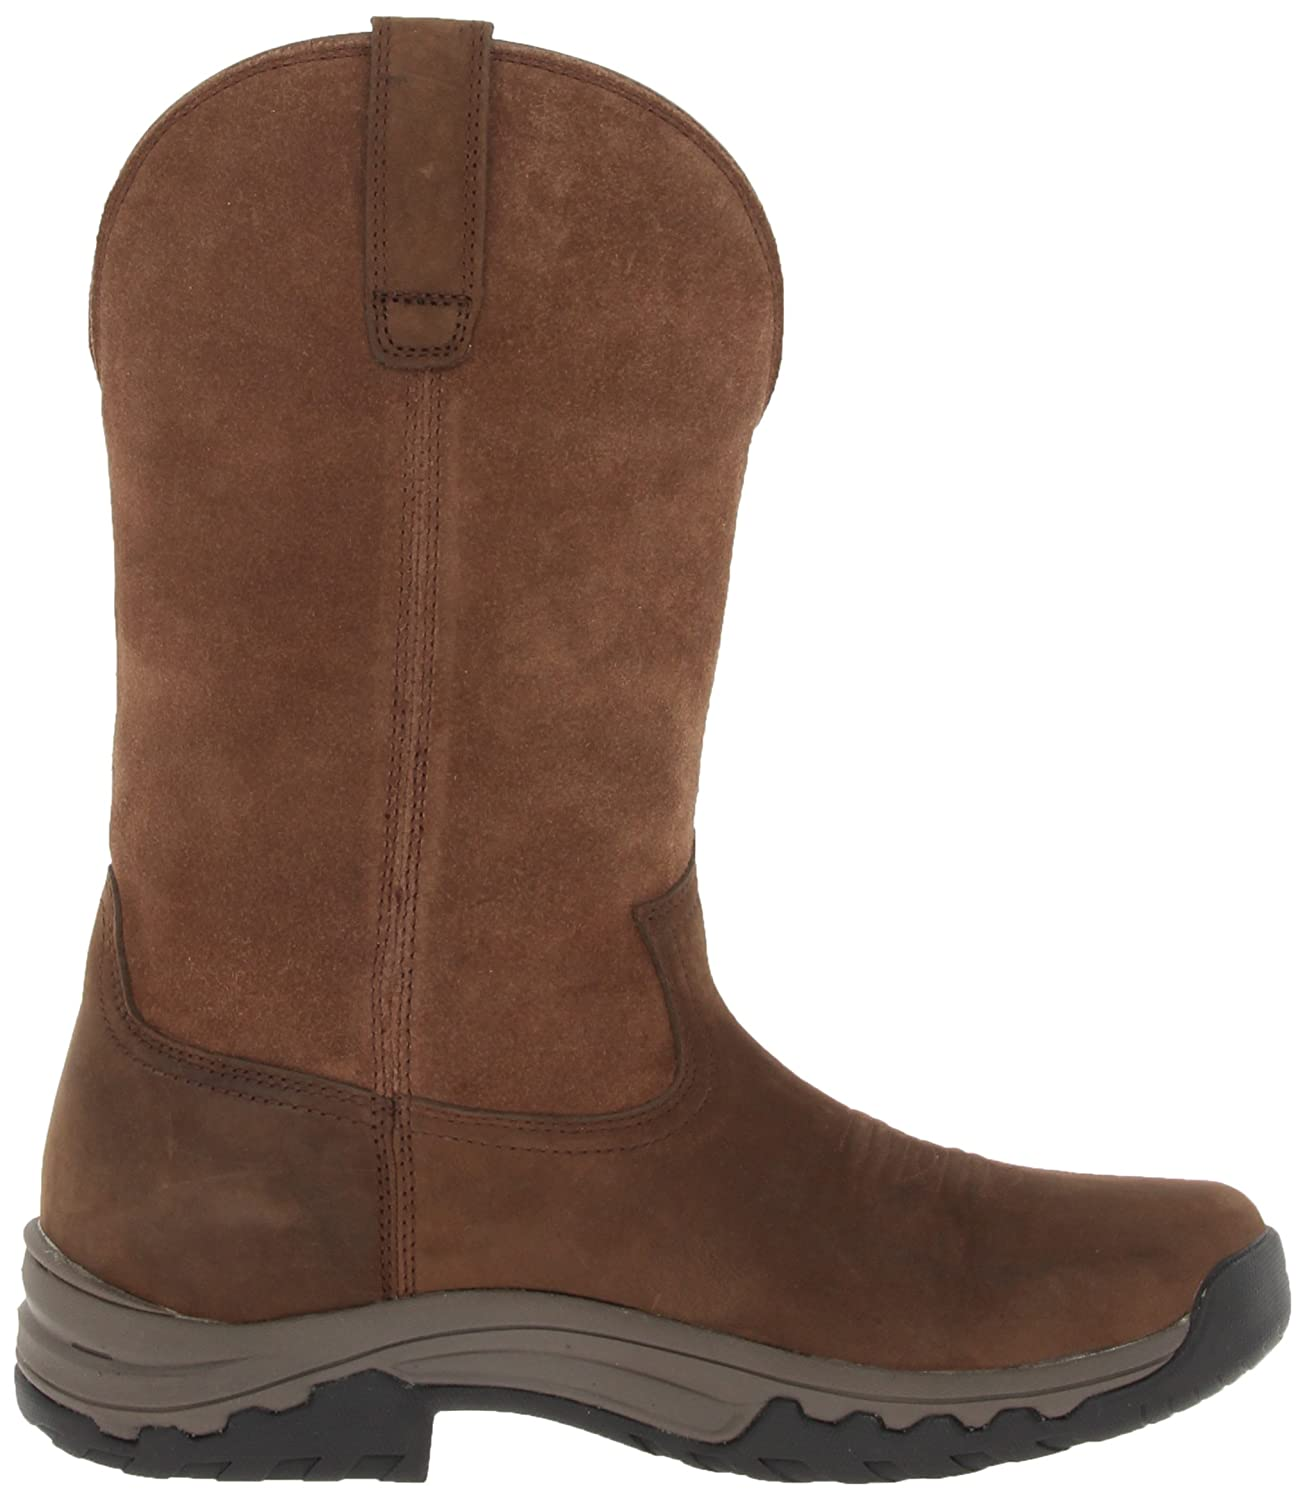 Ariat Women's Terrain Pull-on H2o Western Boot B00BI5EDVS 10 M US|Distressed Brown